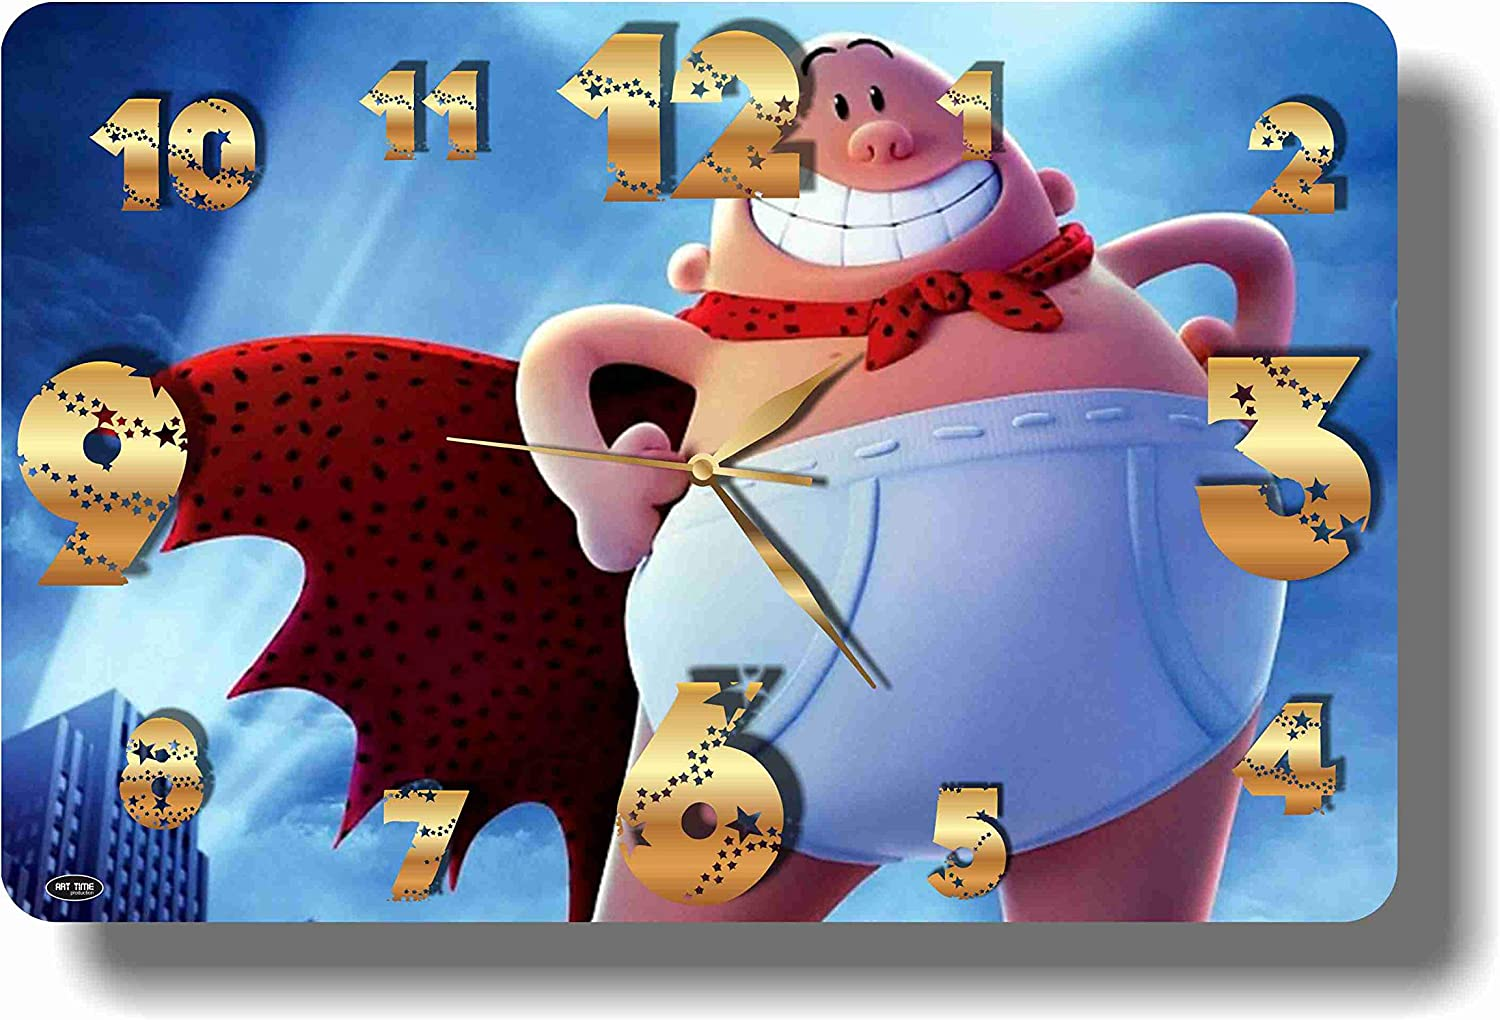 """Art time production Captain Underpants 17"""" x 11"""" Handmade Wall Clock - Get Unique décor for Home or Office – Best Gift Ideas for Kids, Friends, Parents and Your Soul Mates"""